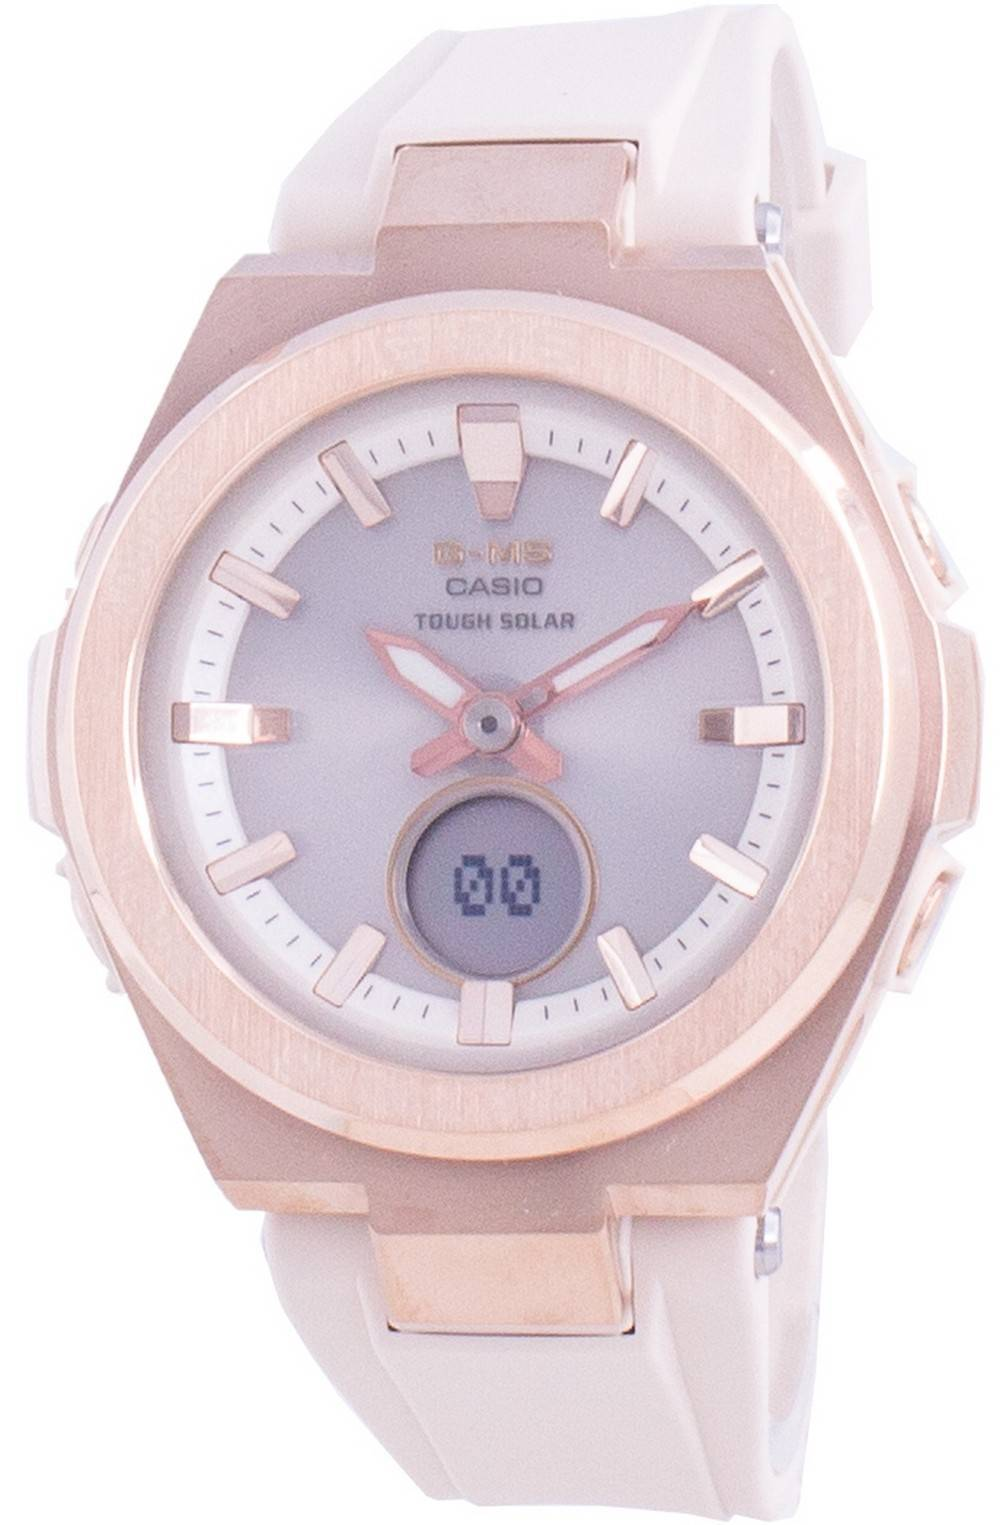 Baby-G G-MS MSG-S200G-4A Solar Shock Resistant Women's Watch